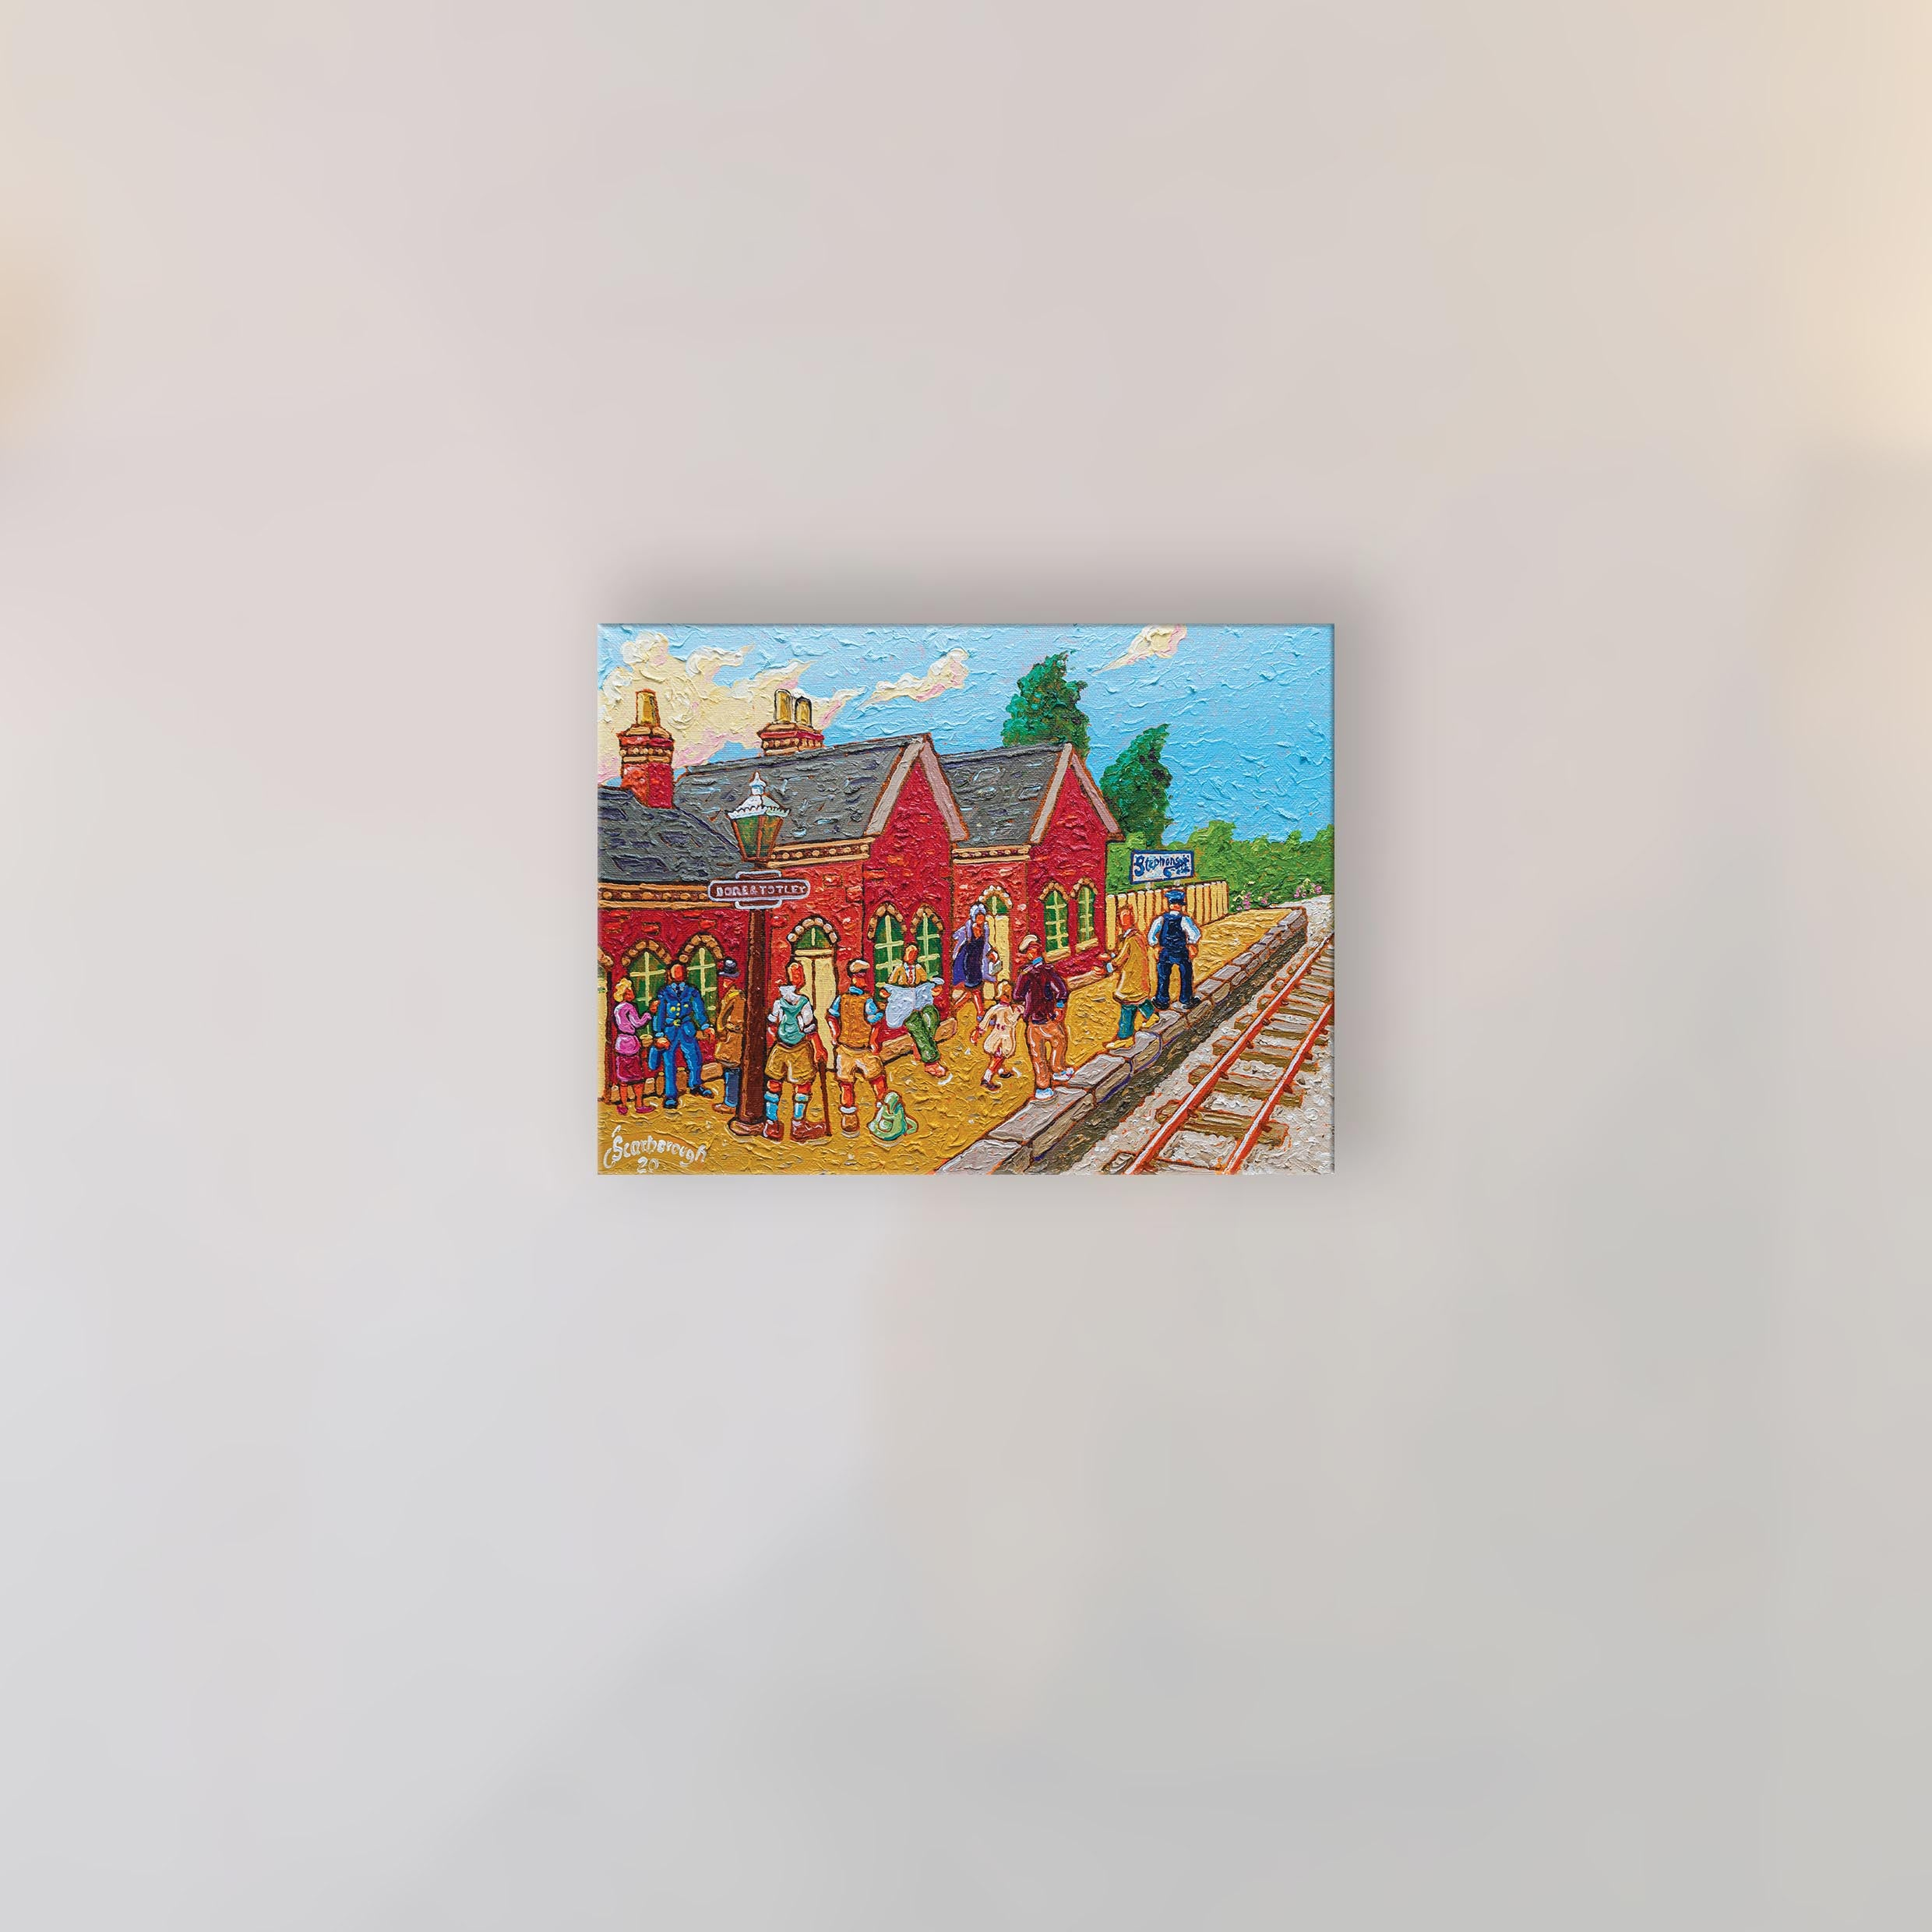 """Dore & Totley Station"" Original Oil Painting on Canvas by Joe Scarborough"